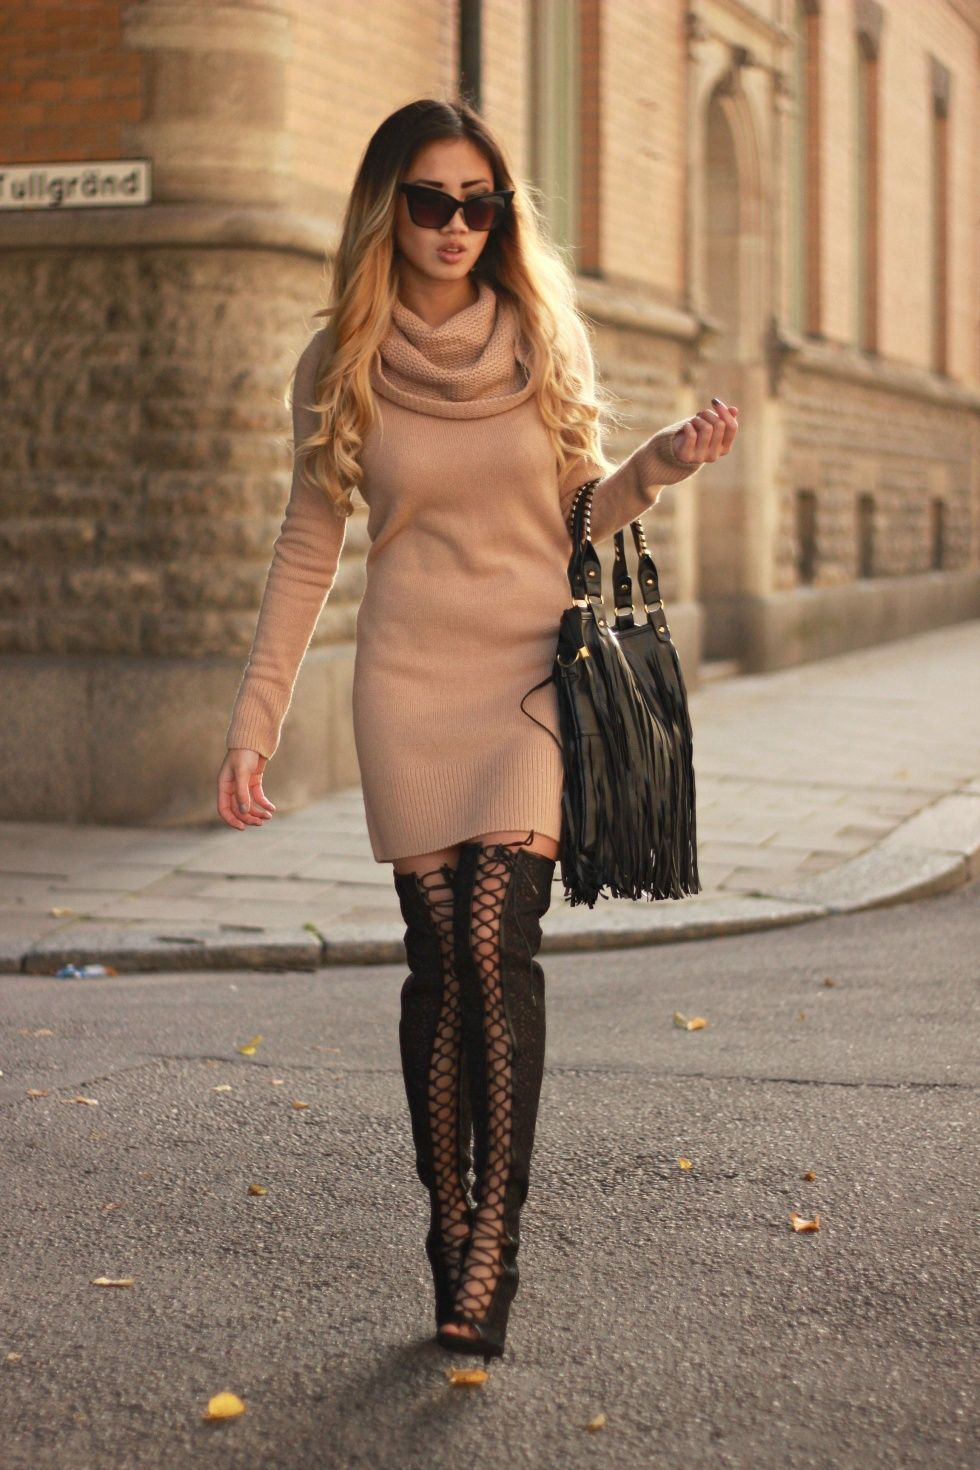 09709cd87d9 Lace up over the knee boots   Thigh high boots outfit    street style   fall     Fringed bag    Knitted turtleneck dress